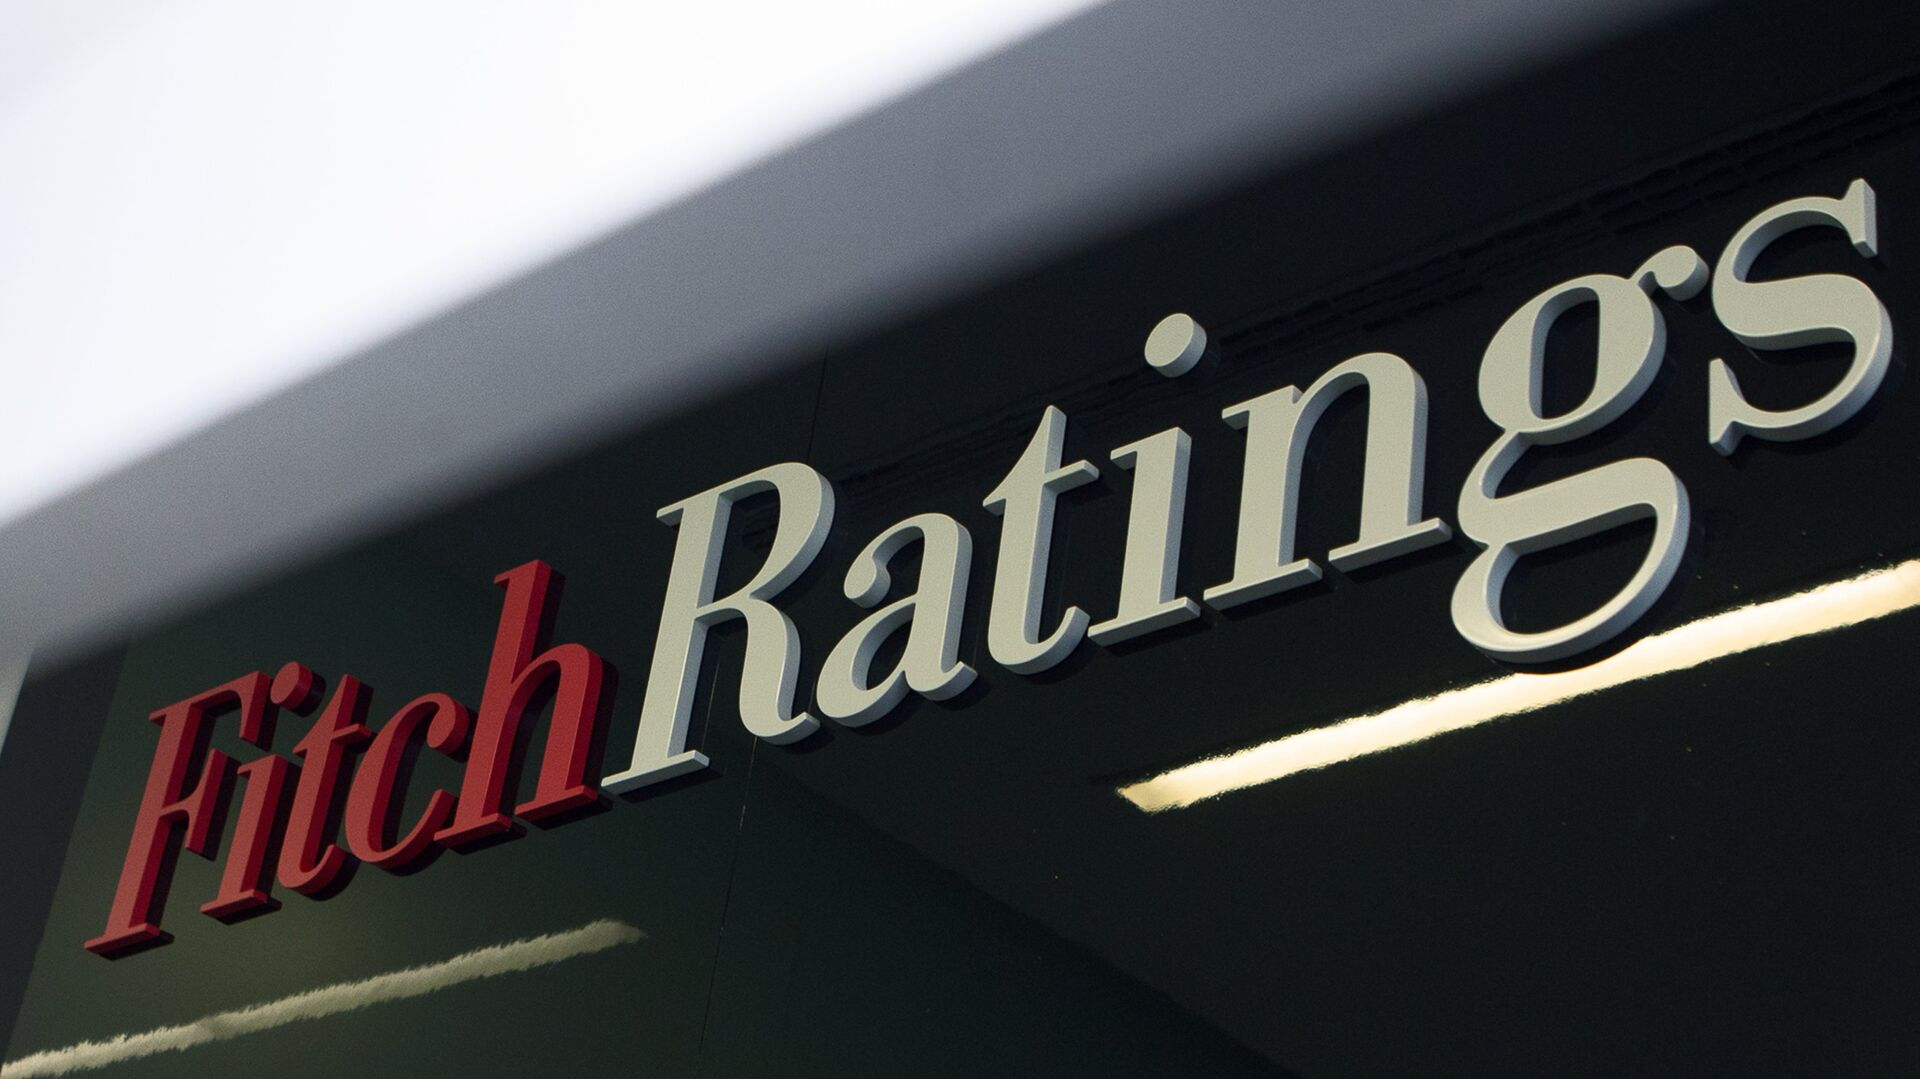 Логотип агентства Fitch Ratings - РИА Новости, 1920, 20.01.2021